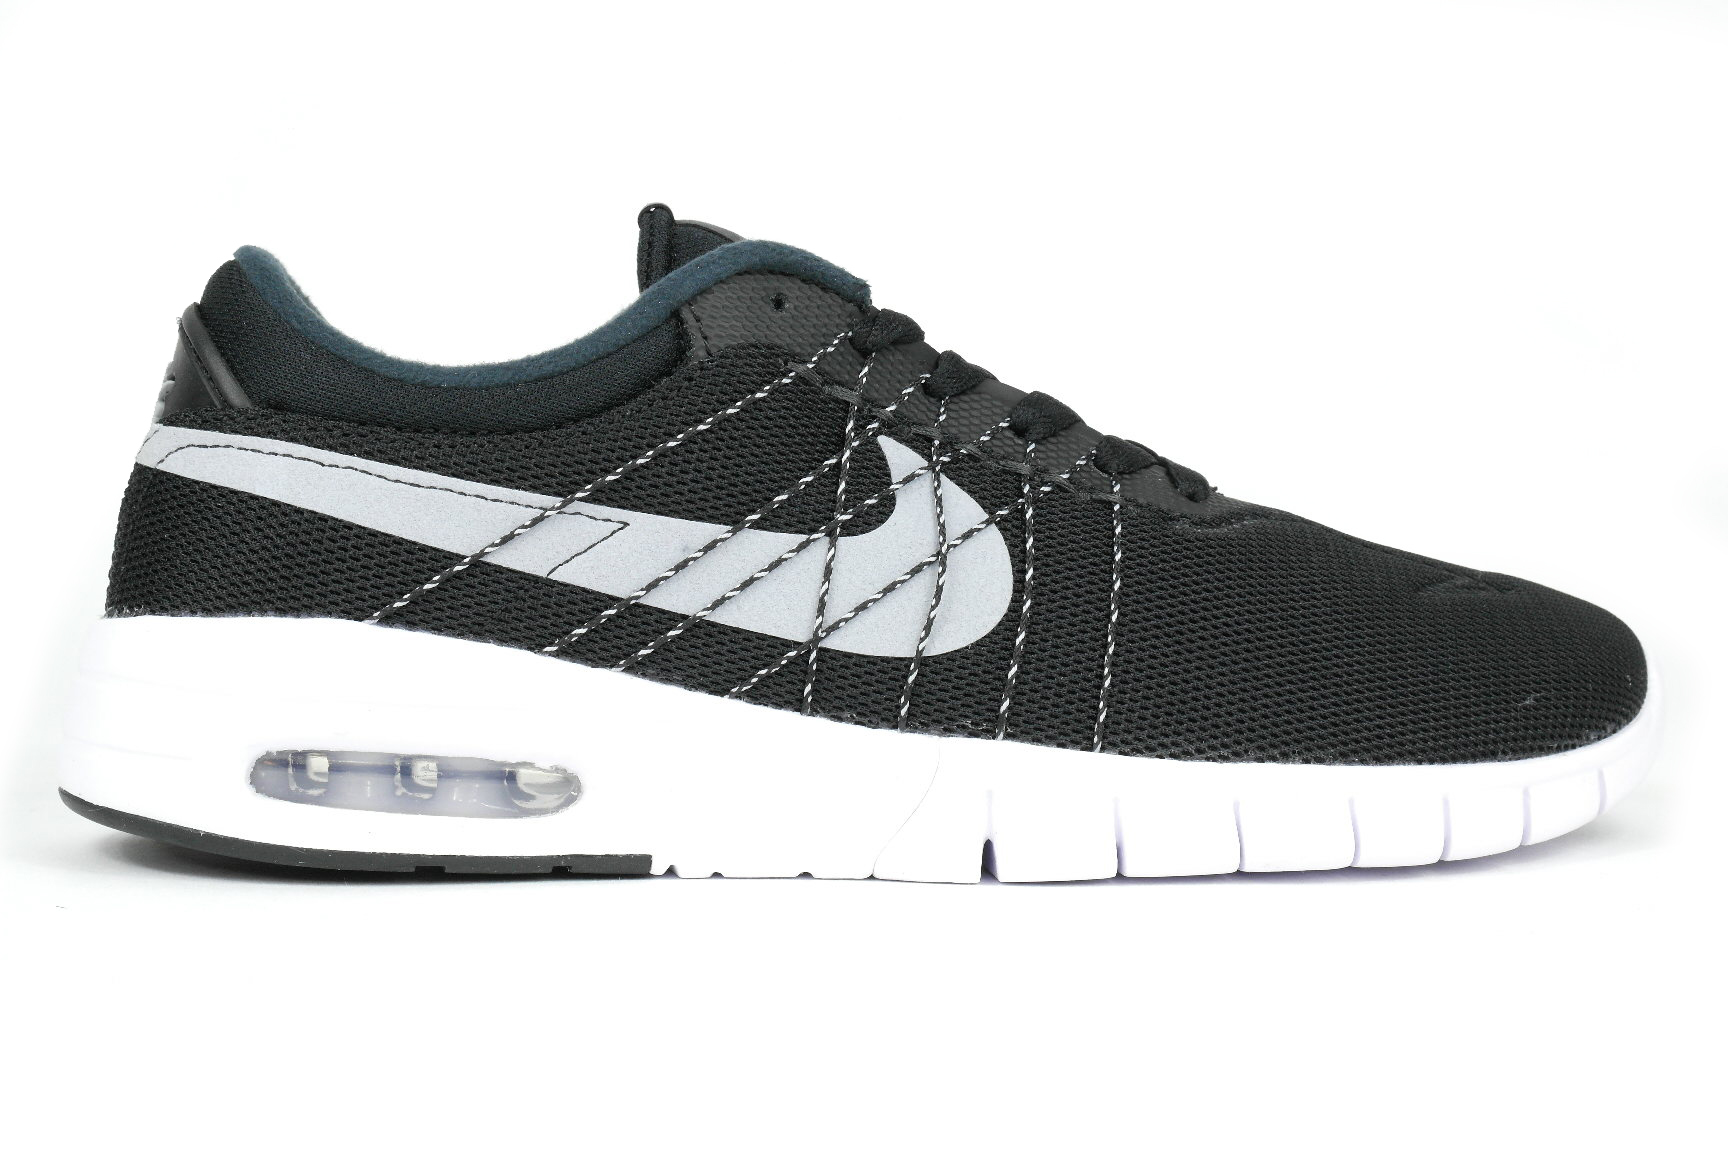 Heren sneakers Nike SB Koston Max